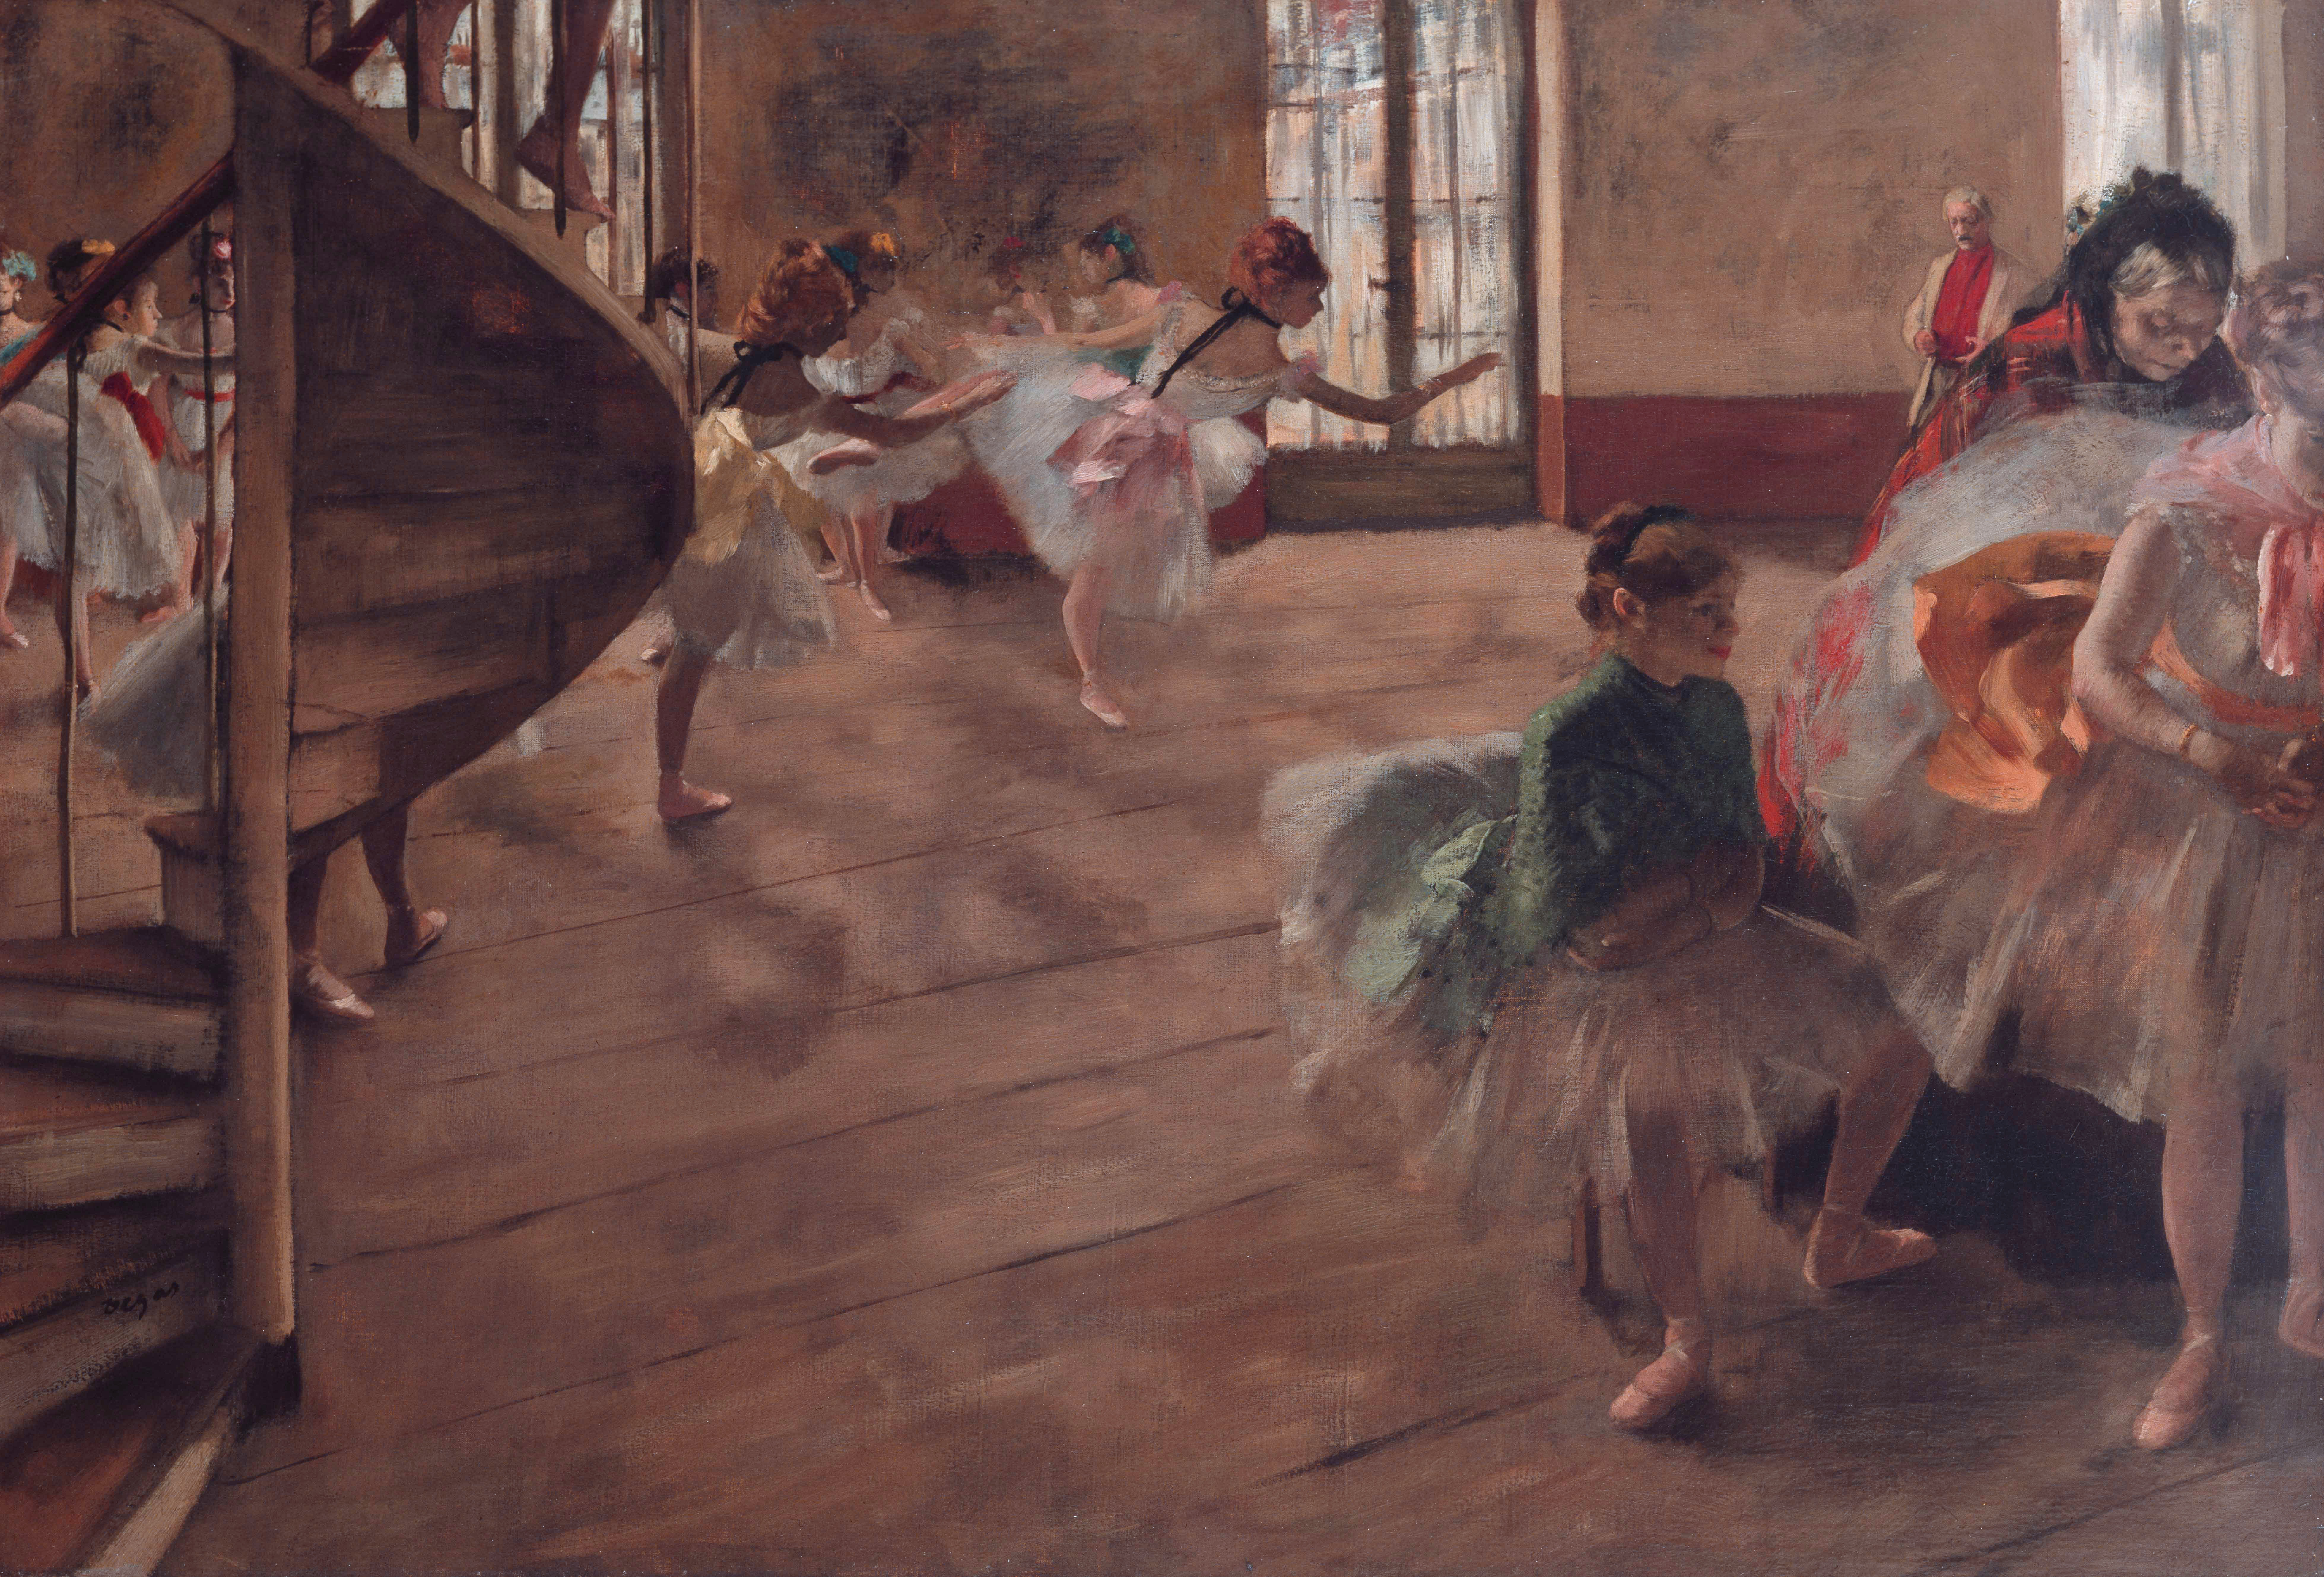 a biography of edgar degas a french artist Edgar degas, however, was fascinated by movement and people—making ballerinas a perfect subject each ballerina painting, drawing, and sculpture by degas showcases this interest  french artist edgar degas took it a step further, rendering his beloved ballerinas in paint, pastel, pencil, ink, and even wax.